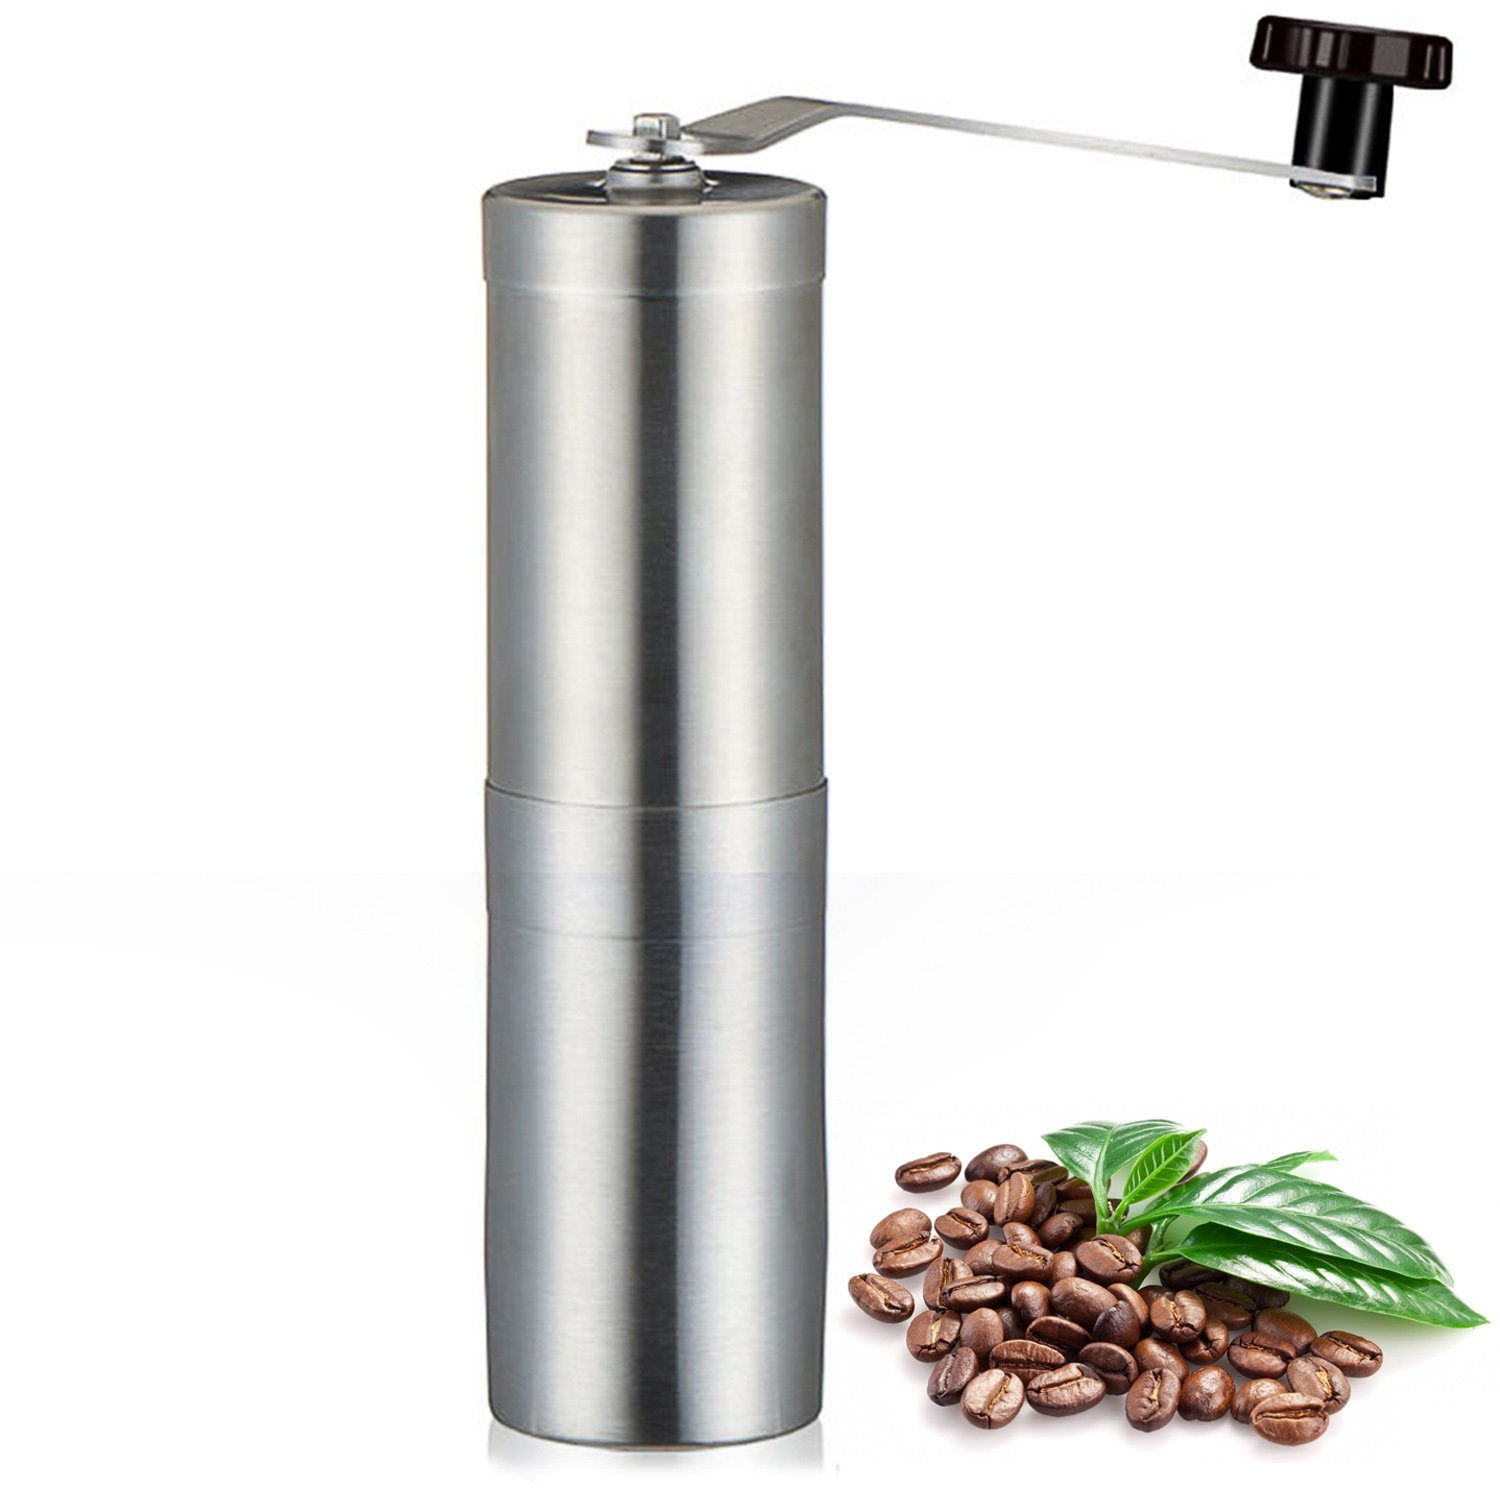 Manual Coffee Grinder, Hand Crank Mini Portable Coffee Bean Grinding - Adjustable Conical Ceramic Burr Mill, Great for Home, Travel & Camping - Stainless Steel